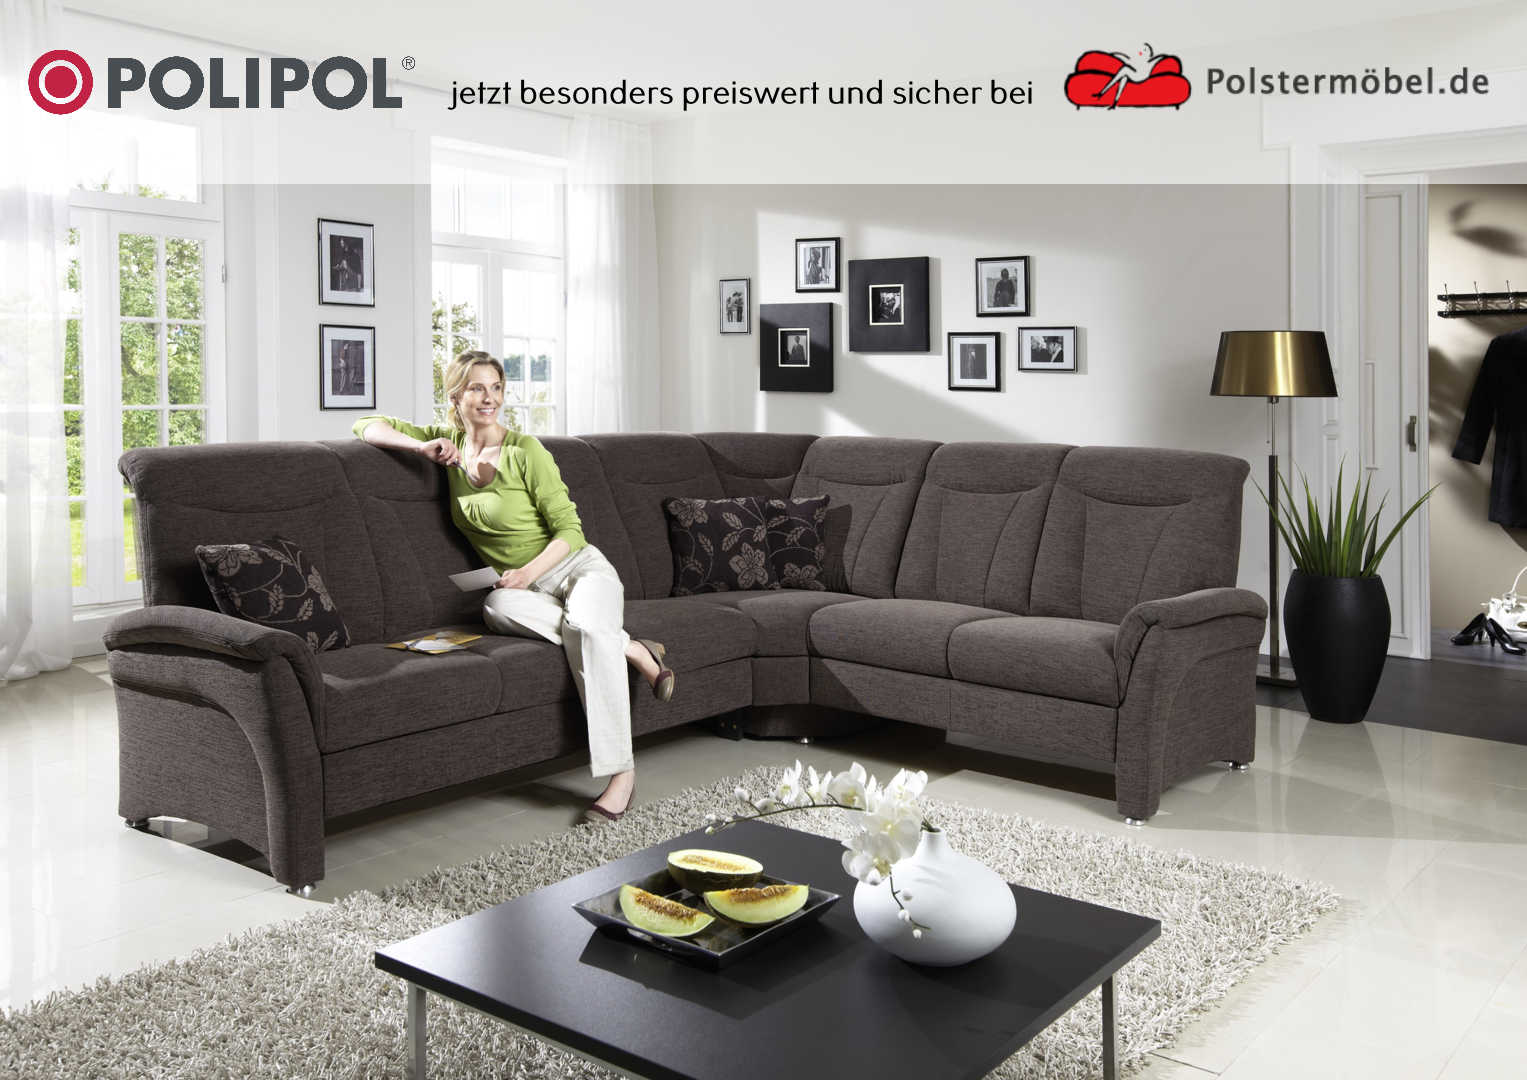 polipol pascali polsterm. Black Bedroom Furniture Sets. Home Design Ideas